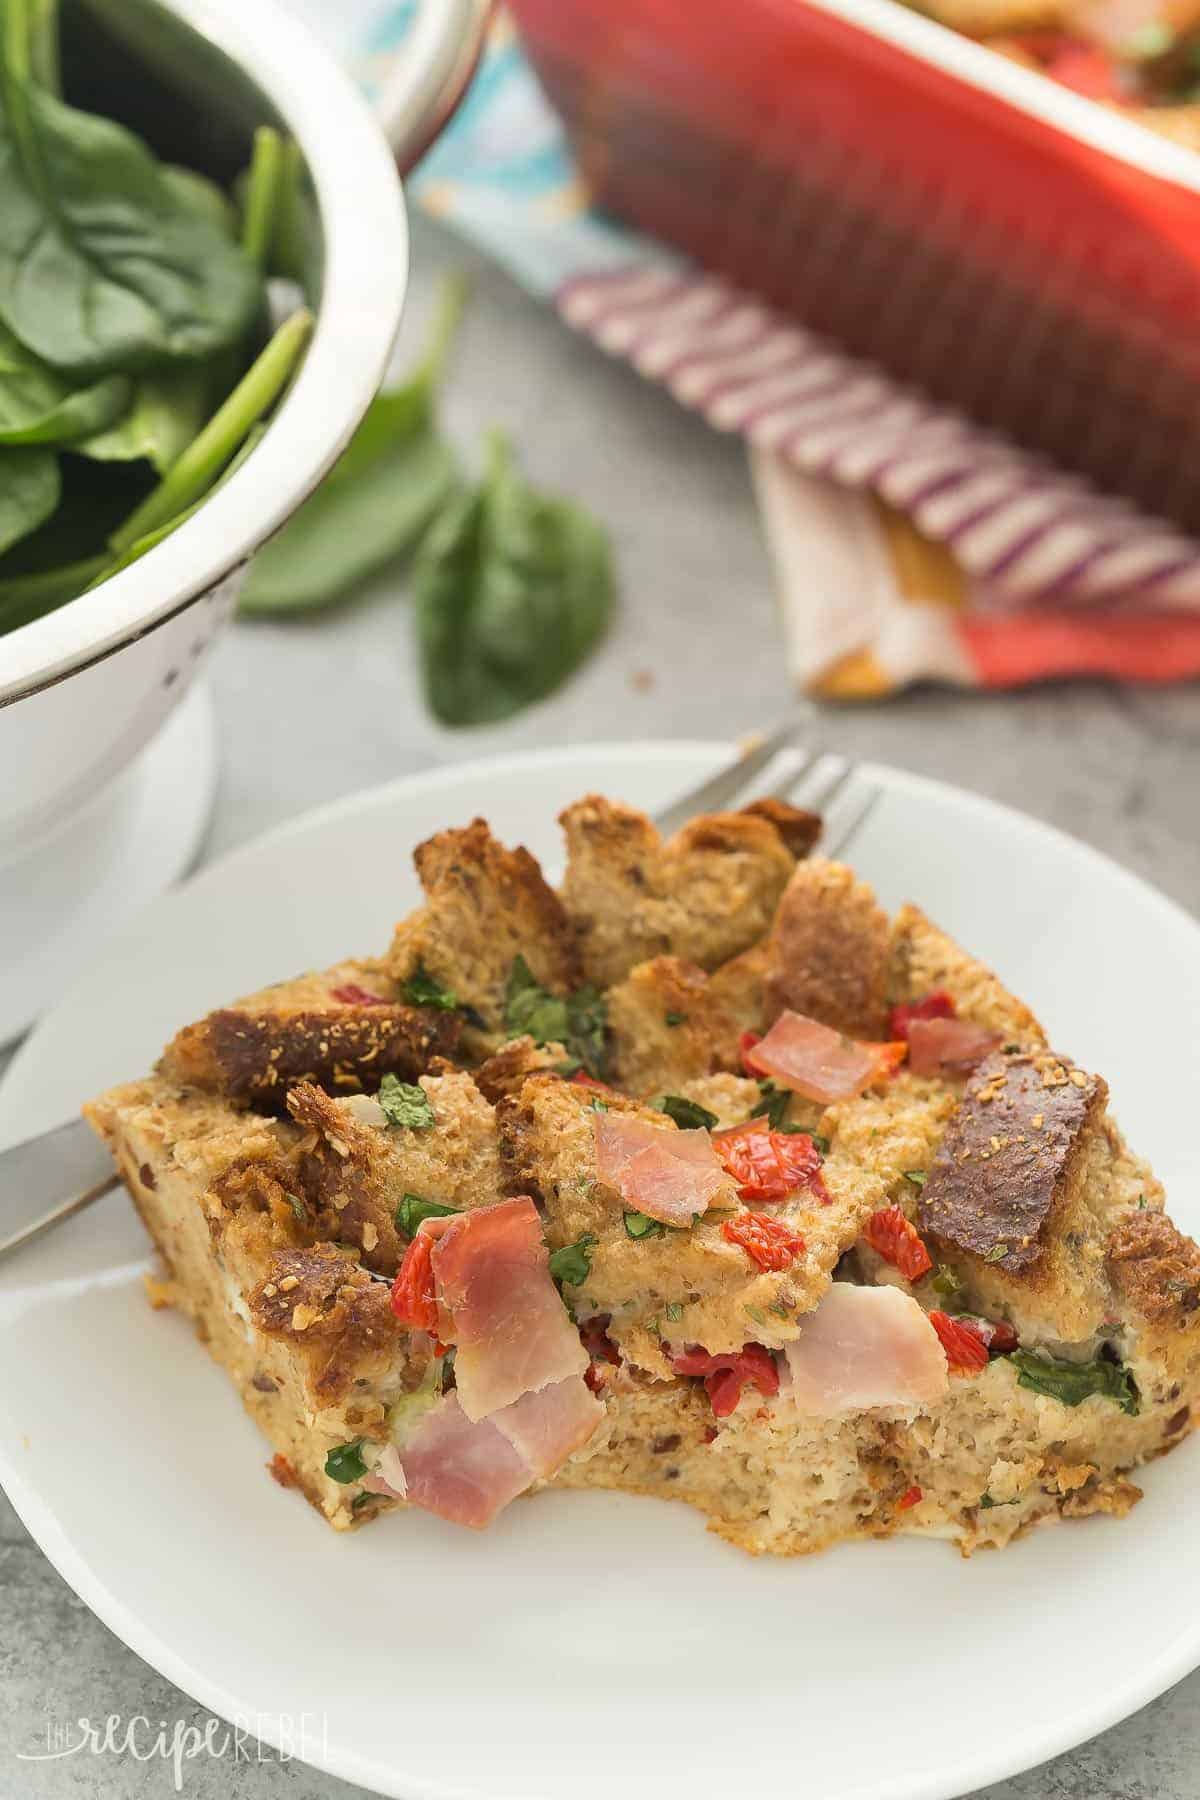 This Spinach and Ham Breakfast Casserole is a healthy, hearty breakfast, lunch or dinner packed with whole grains, eggs, ham, spinach and roasted red peppers! It can be made in a mug in the microwave or in a casserole dish in the oven -- perfect for one or a crowd!